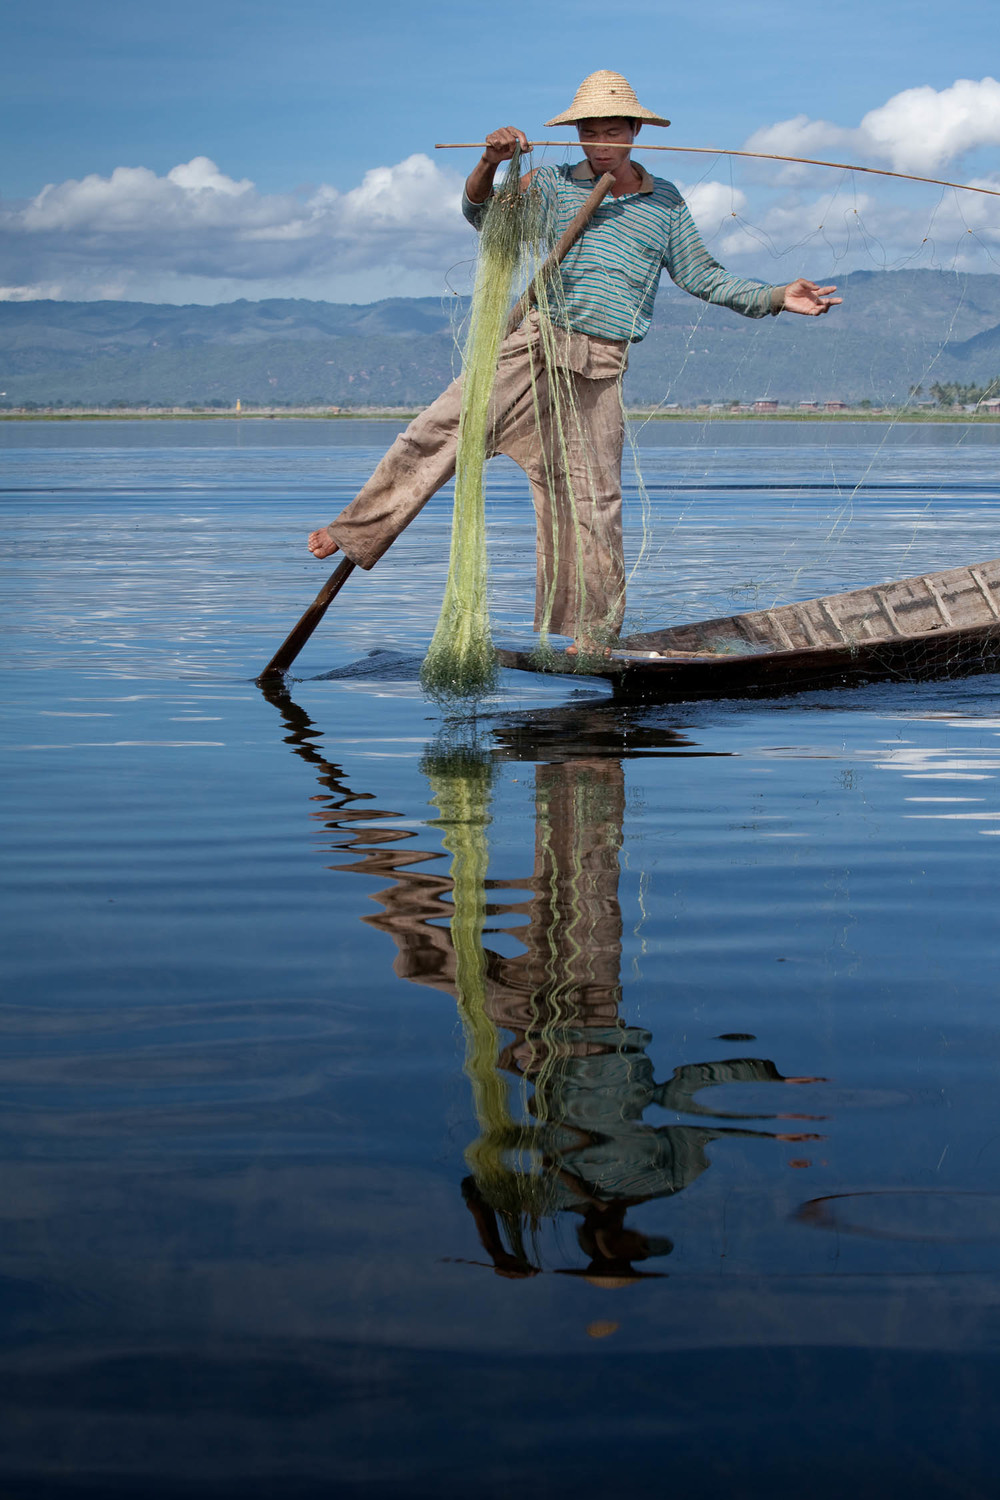 one-legged-fisherman-fishing-Inle-lake--myanmar-burma-asia-travel